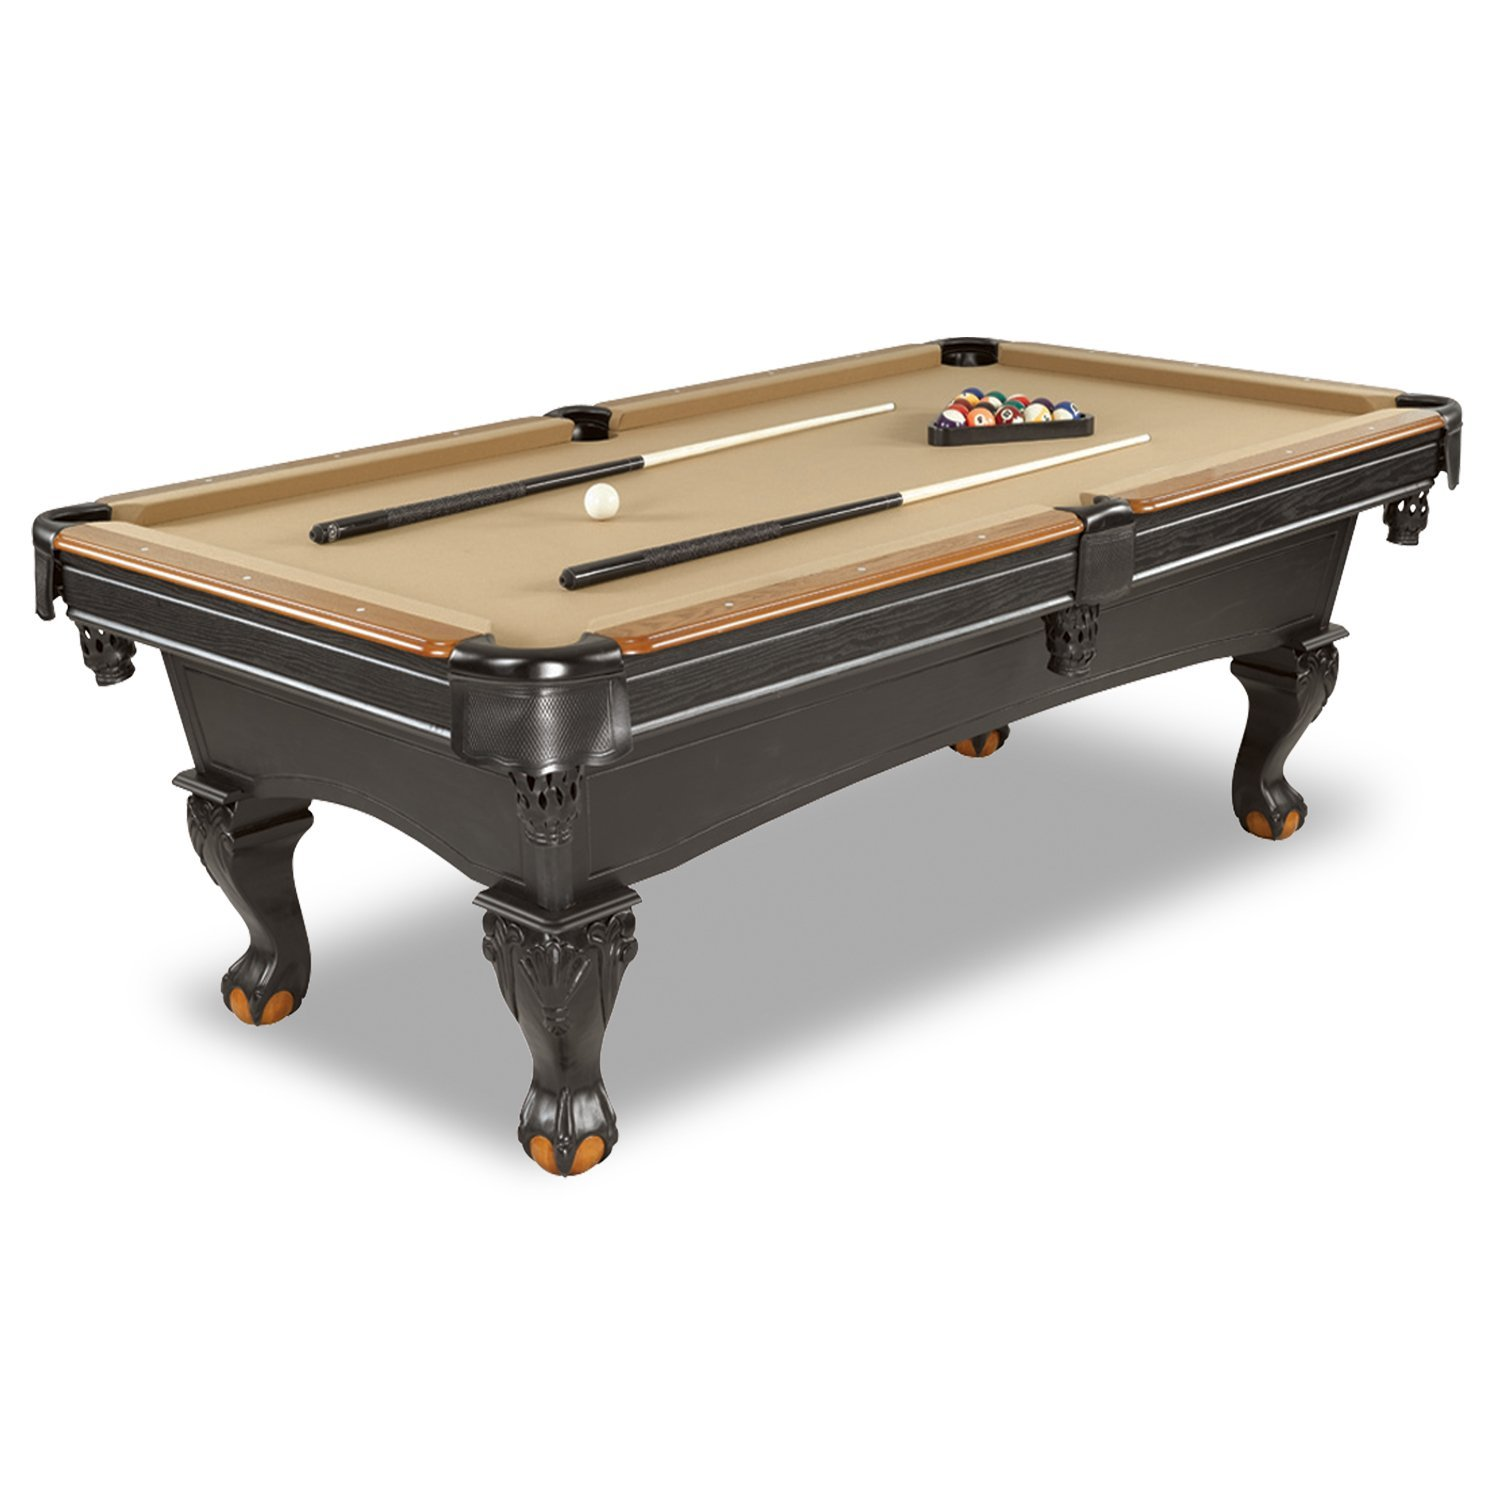 quality high lanka oem pool product queen table for sale tables detail sri cheap buy